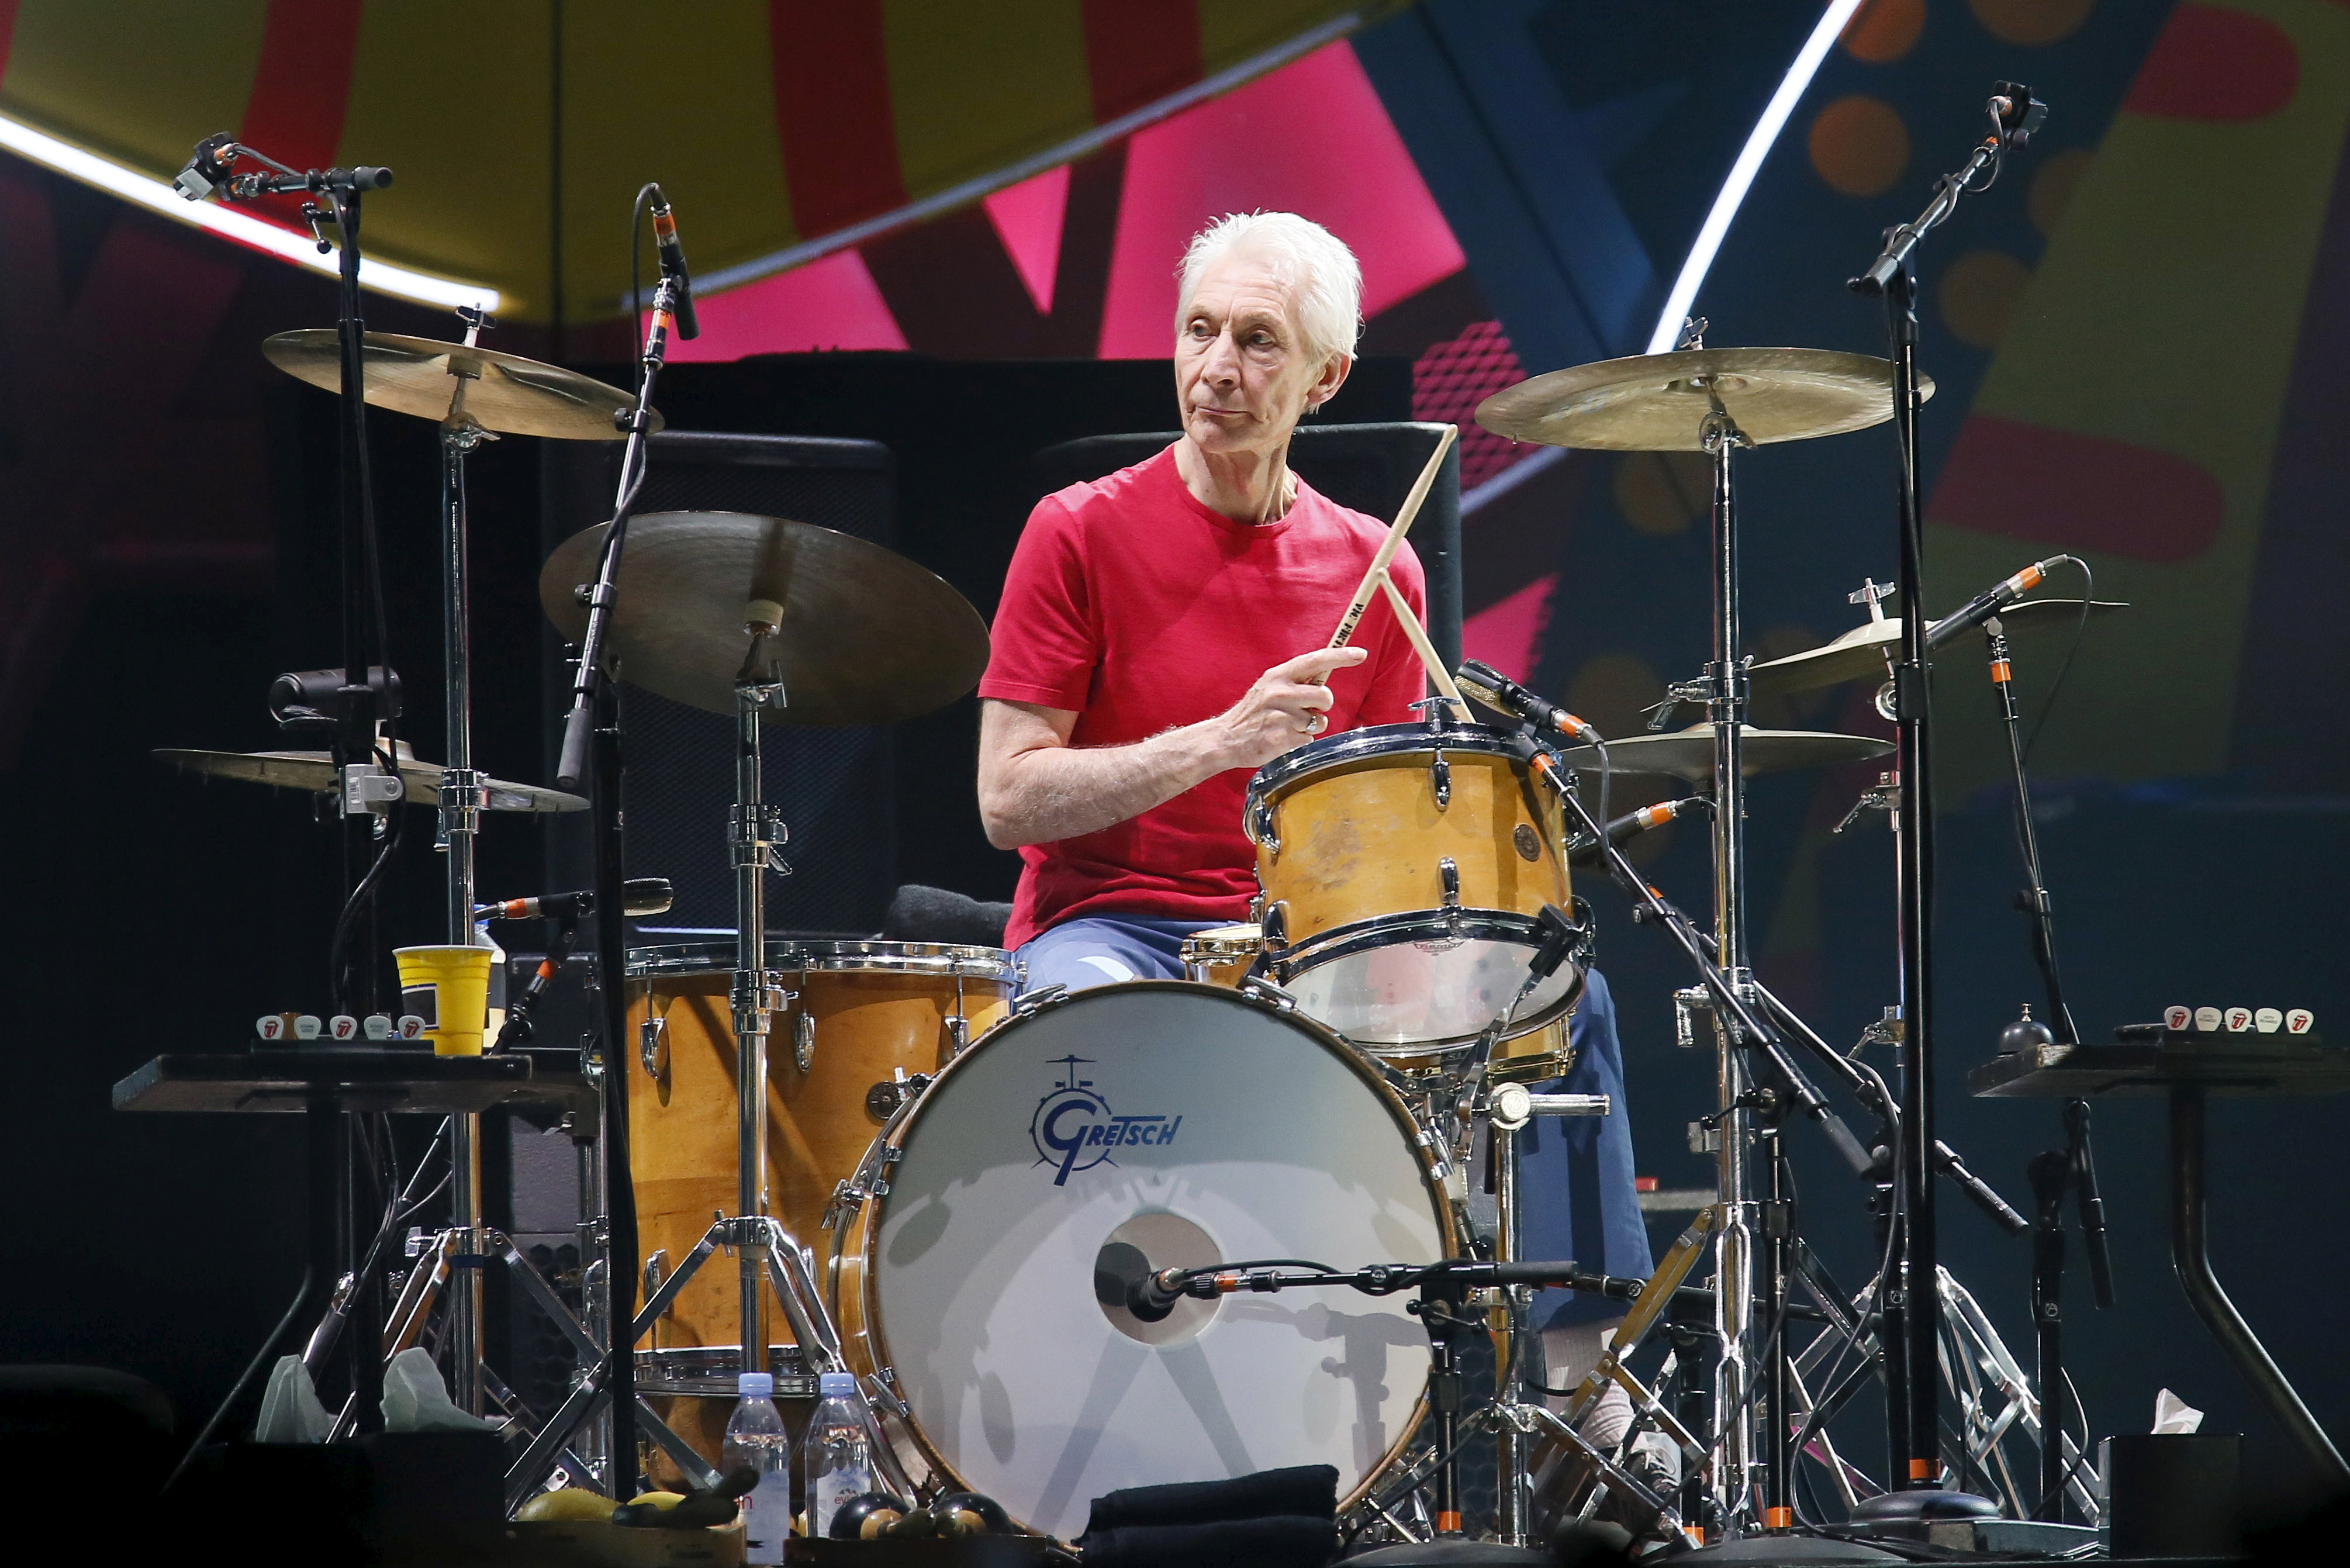 Charlie Watts of British veteran rockers The Rolling Stones performs with his band members Mick Jagger, Keith Richards, and Ronnie Wood during a concert on their